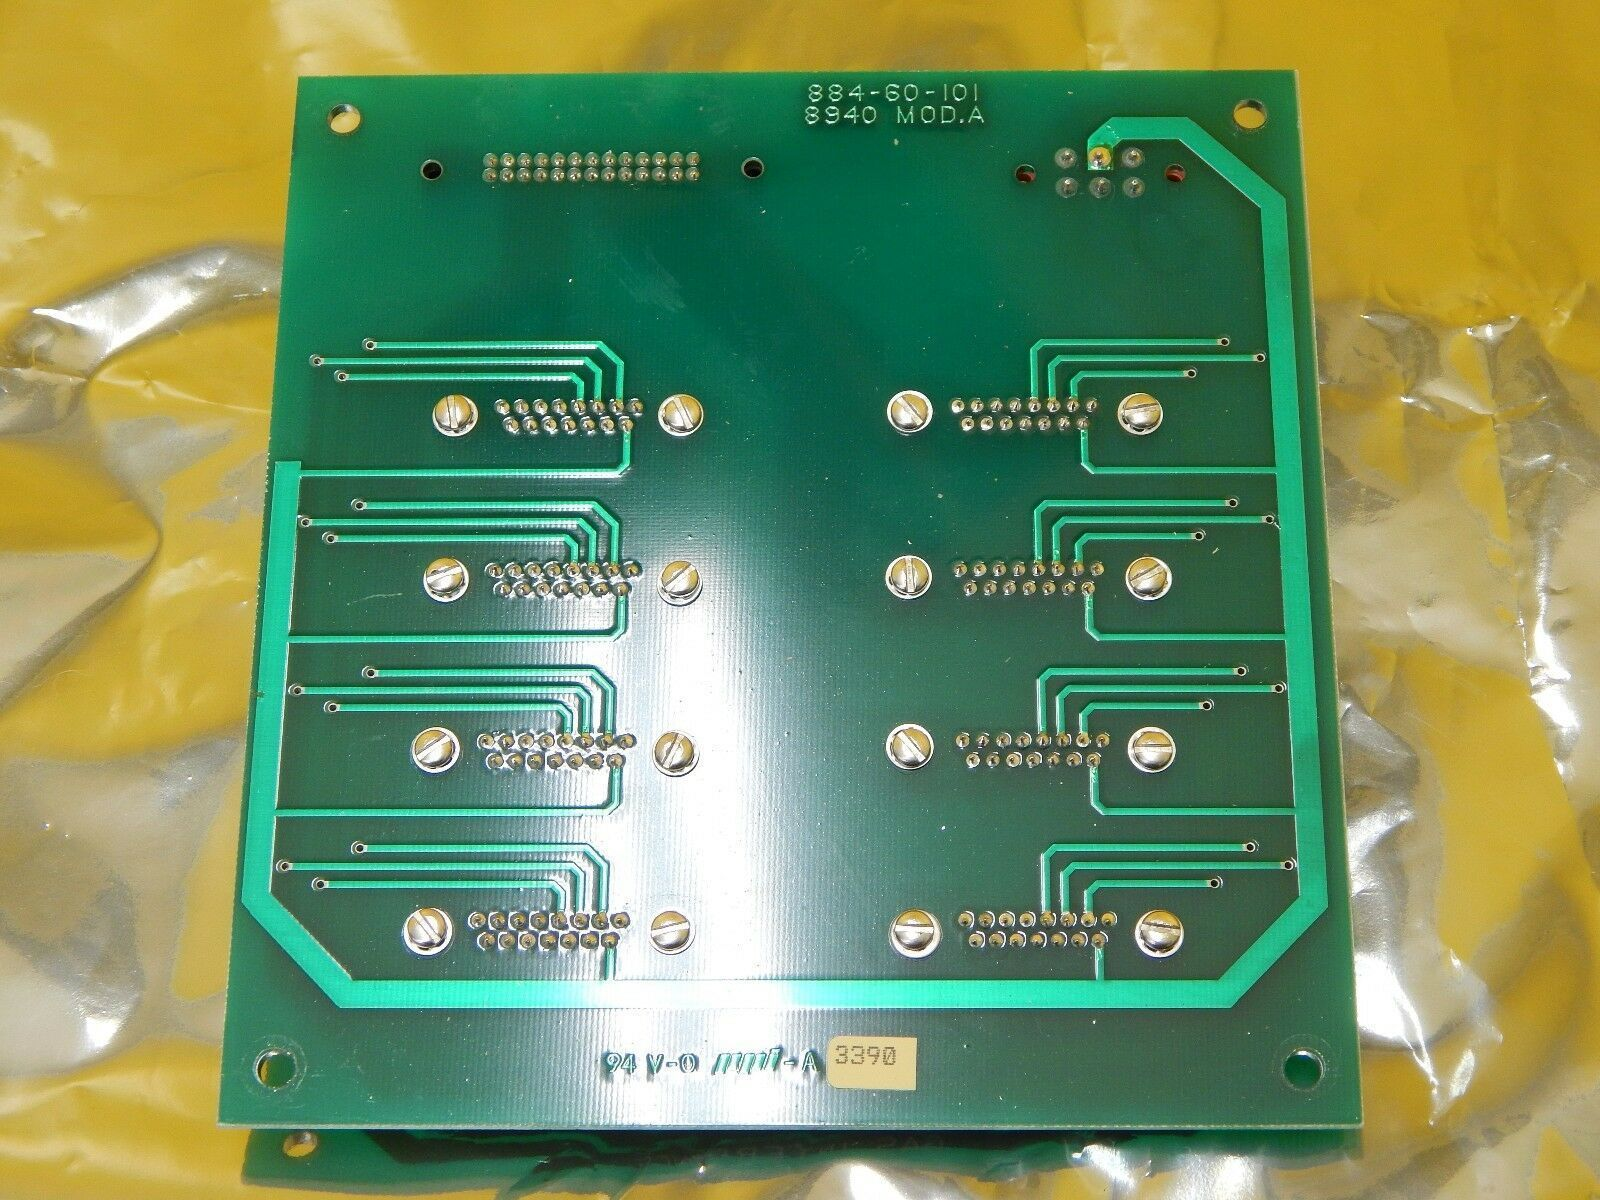 MRC Materials Research 884-60-000 Gas Interface PCB Rev. D Eclipse Star Used